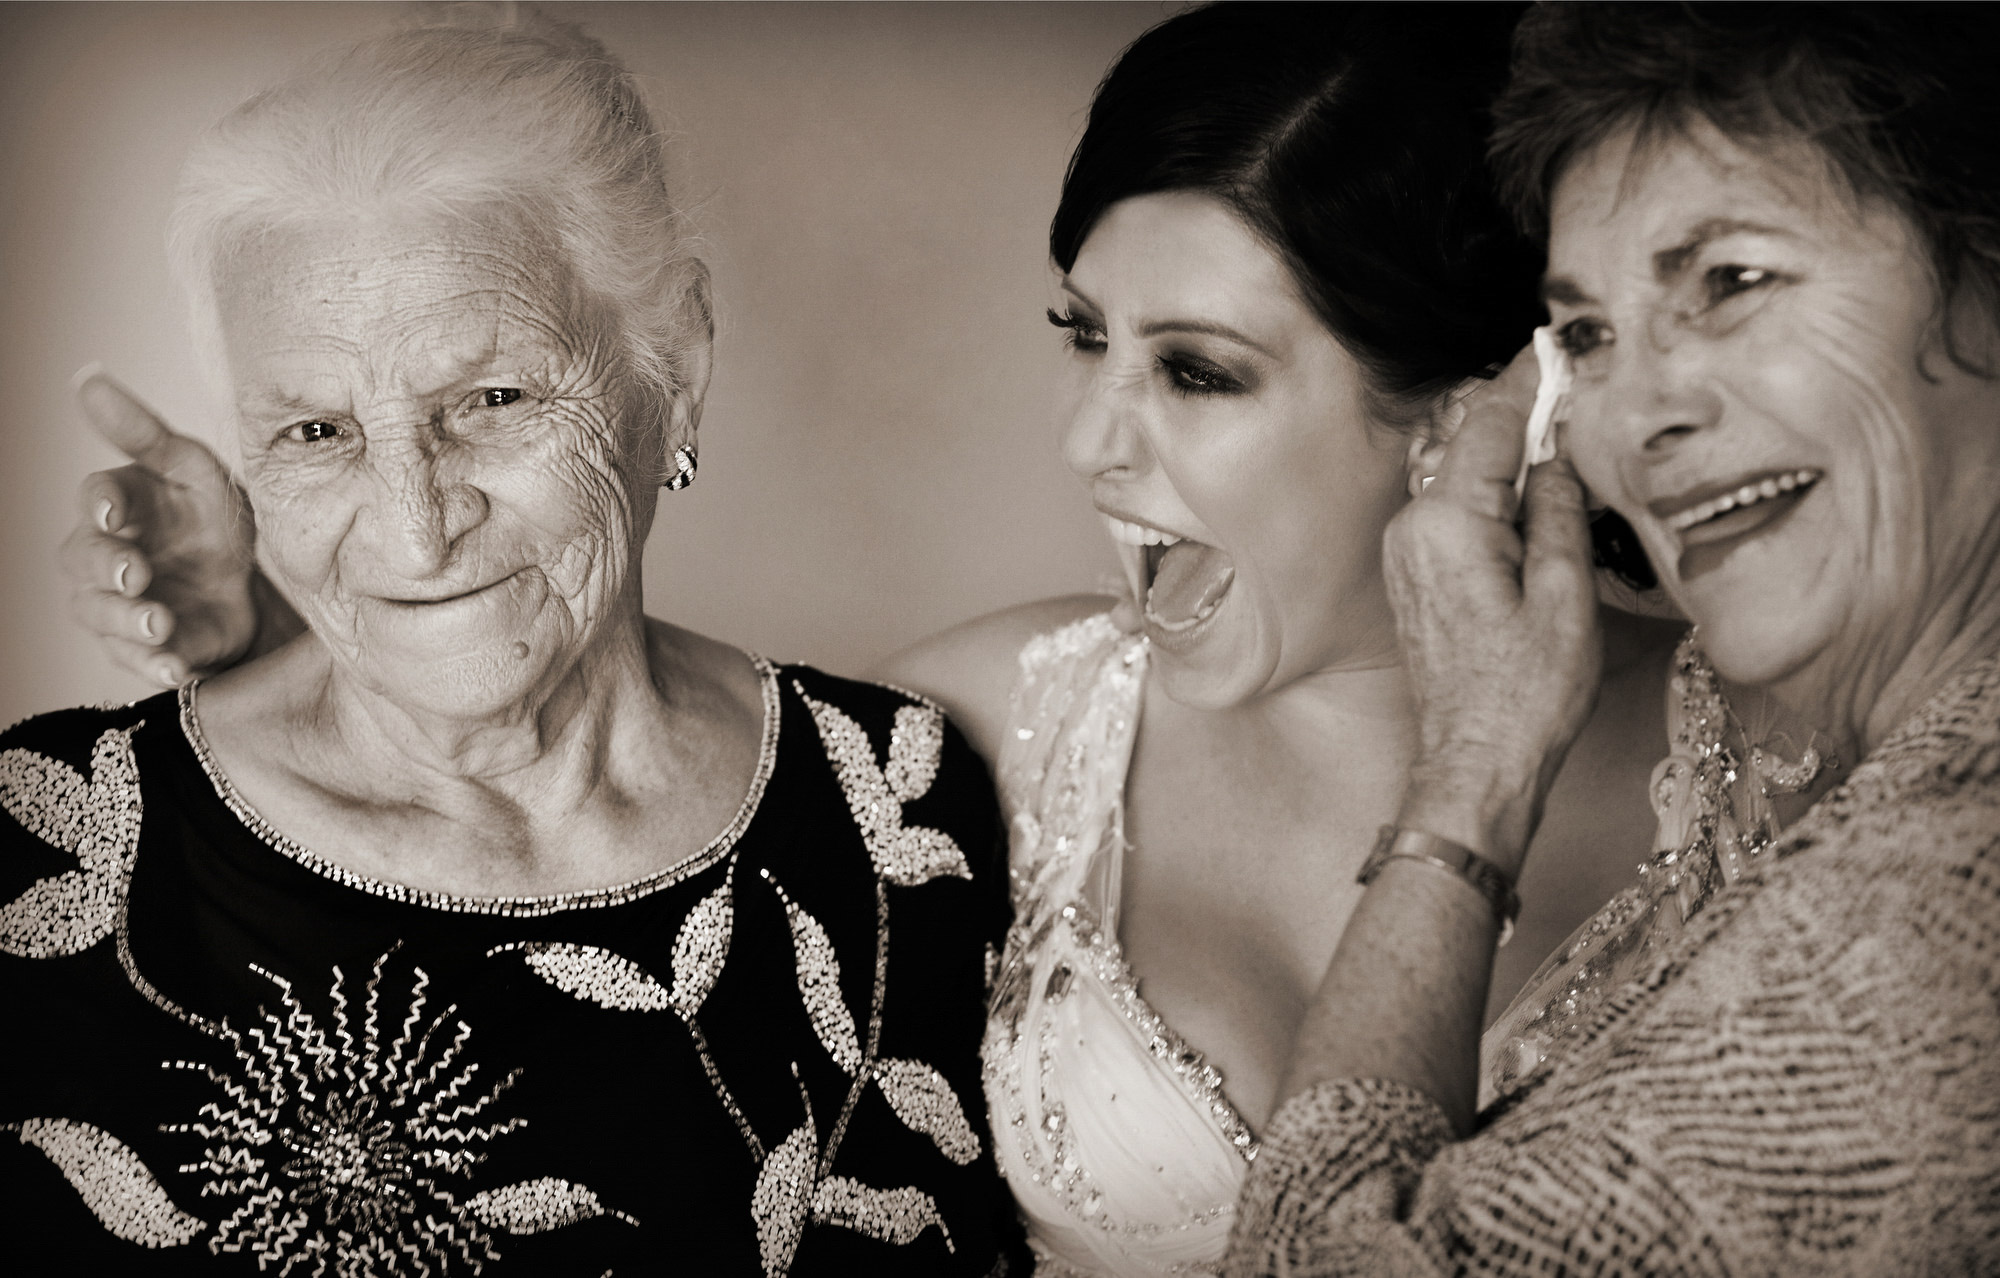 Sweet moment with 3 generations - family portrait by Jerry Ghionis